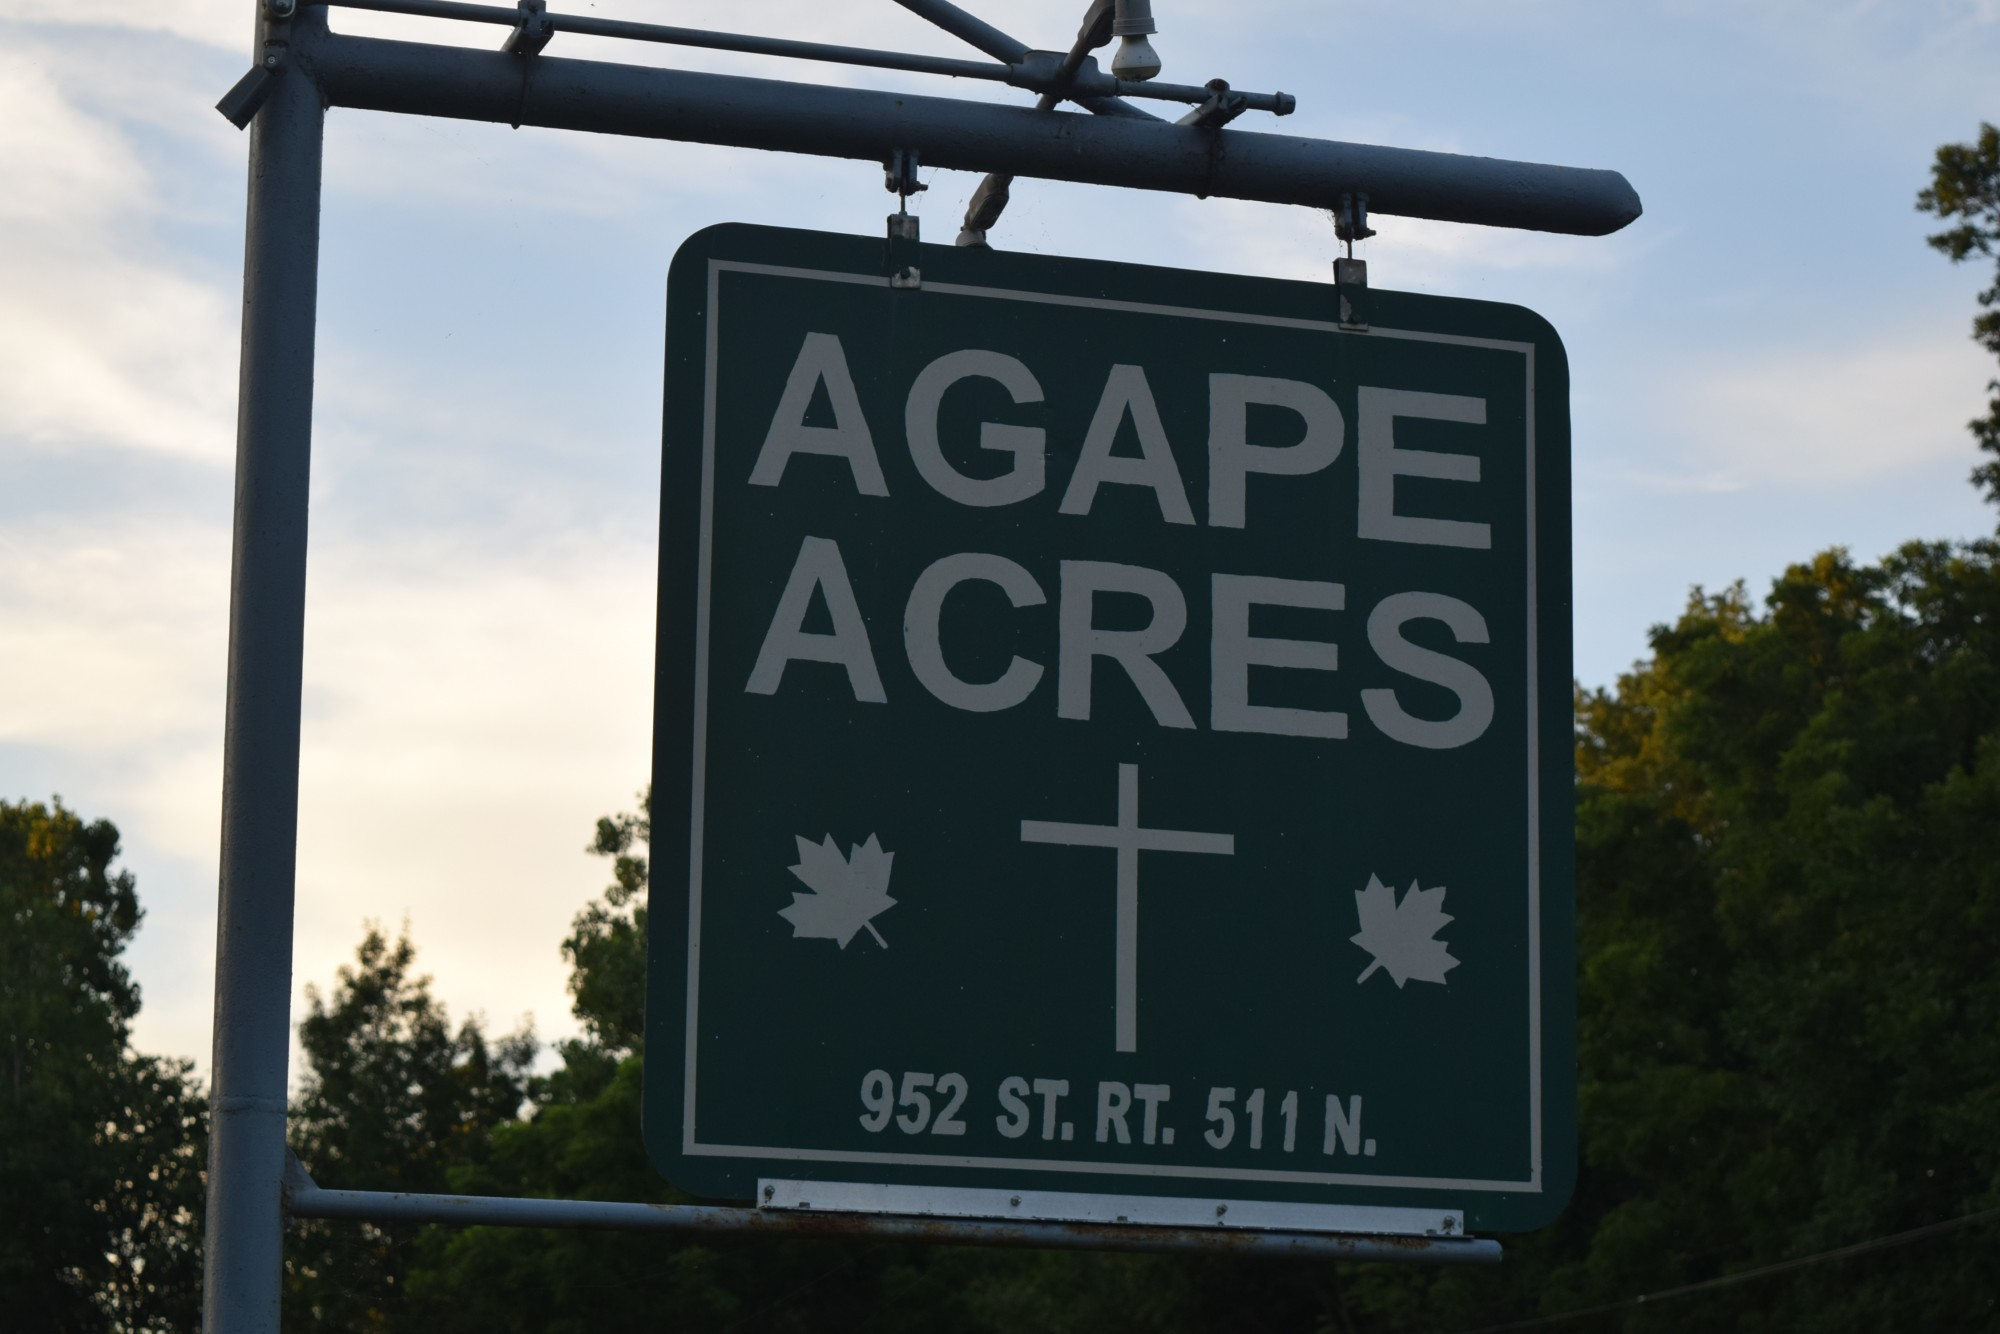 Agape Acres:Part 1